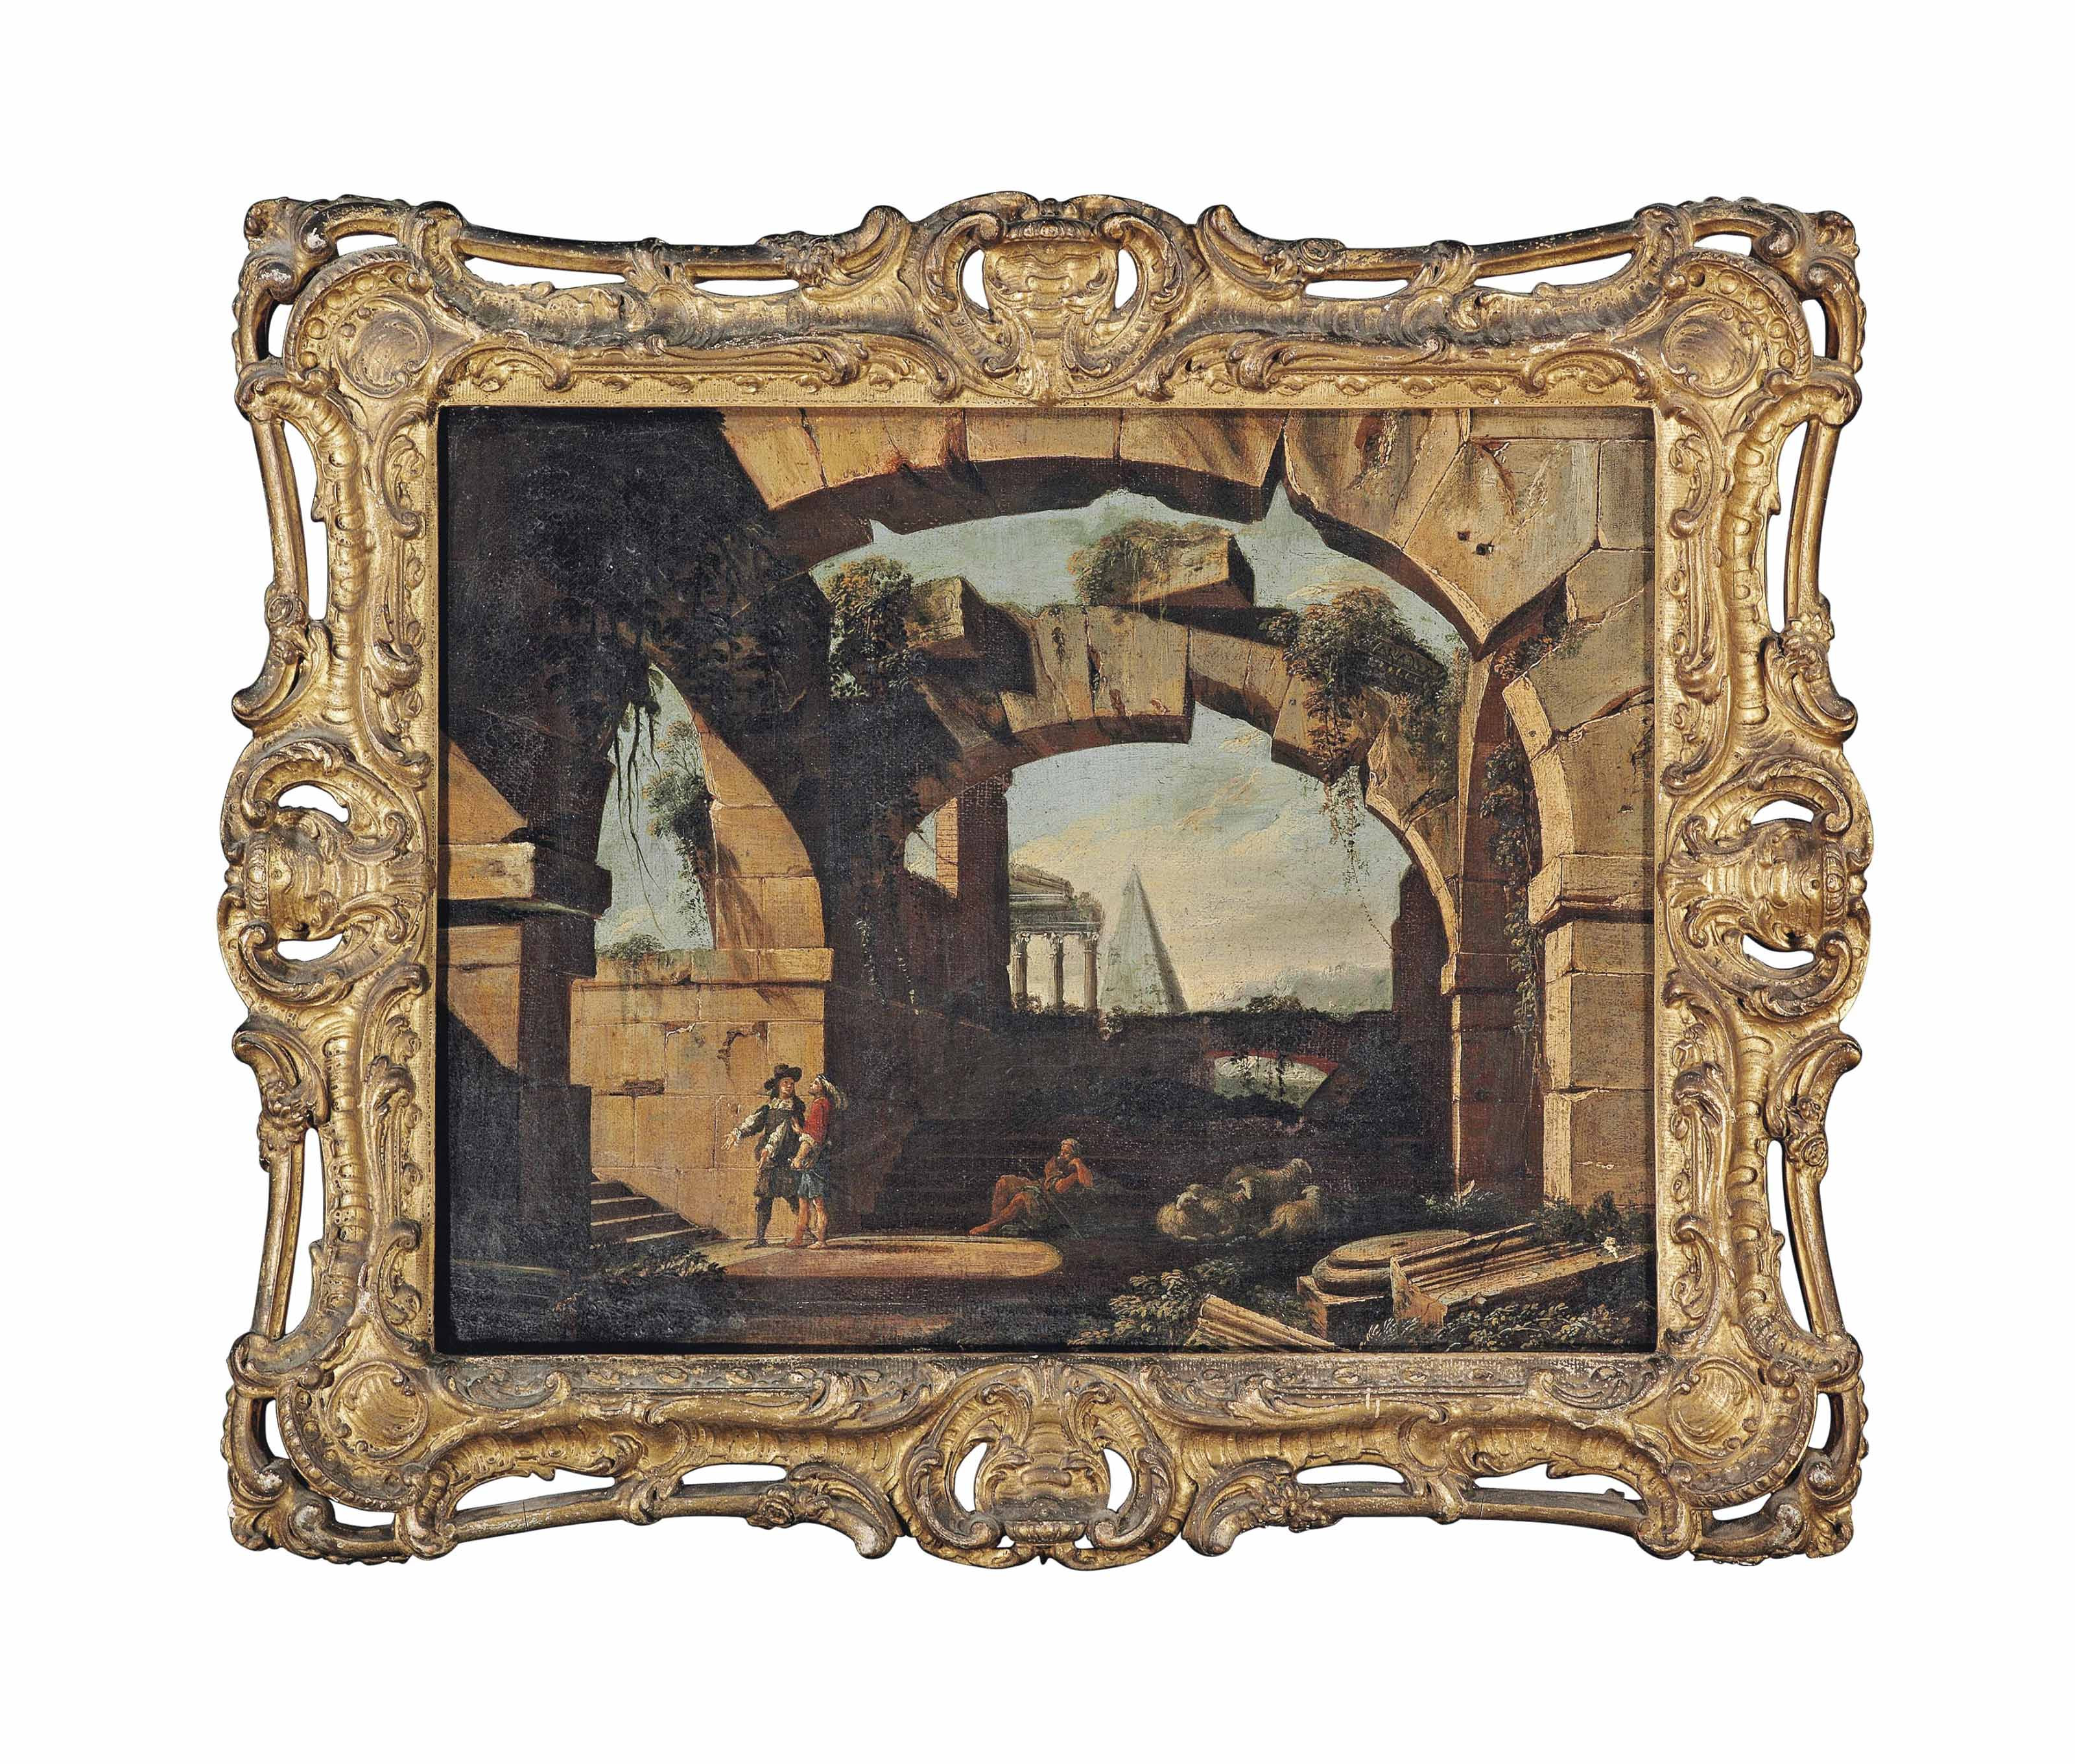 An architectural capriccio with figures beneath a ruined arch